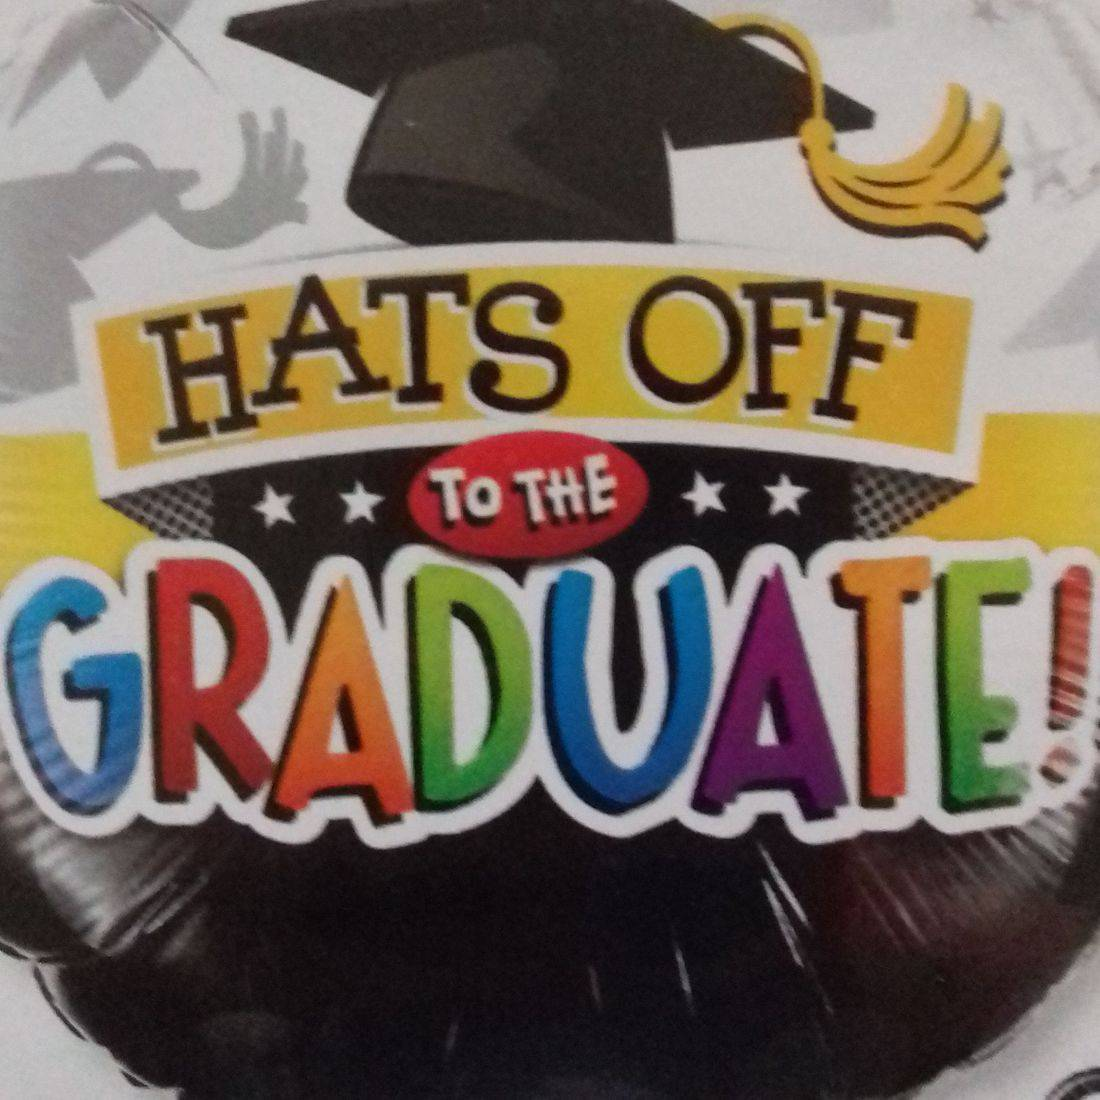 CONGRATS TO THE GRADUATE BALLOON